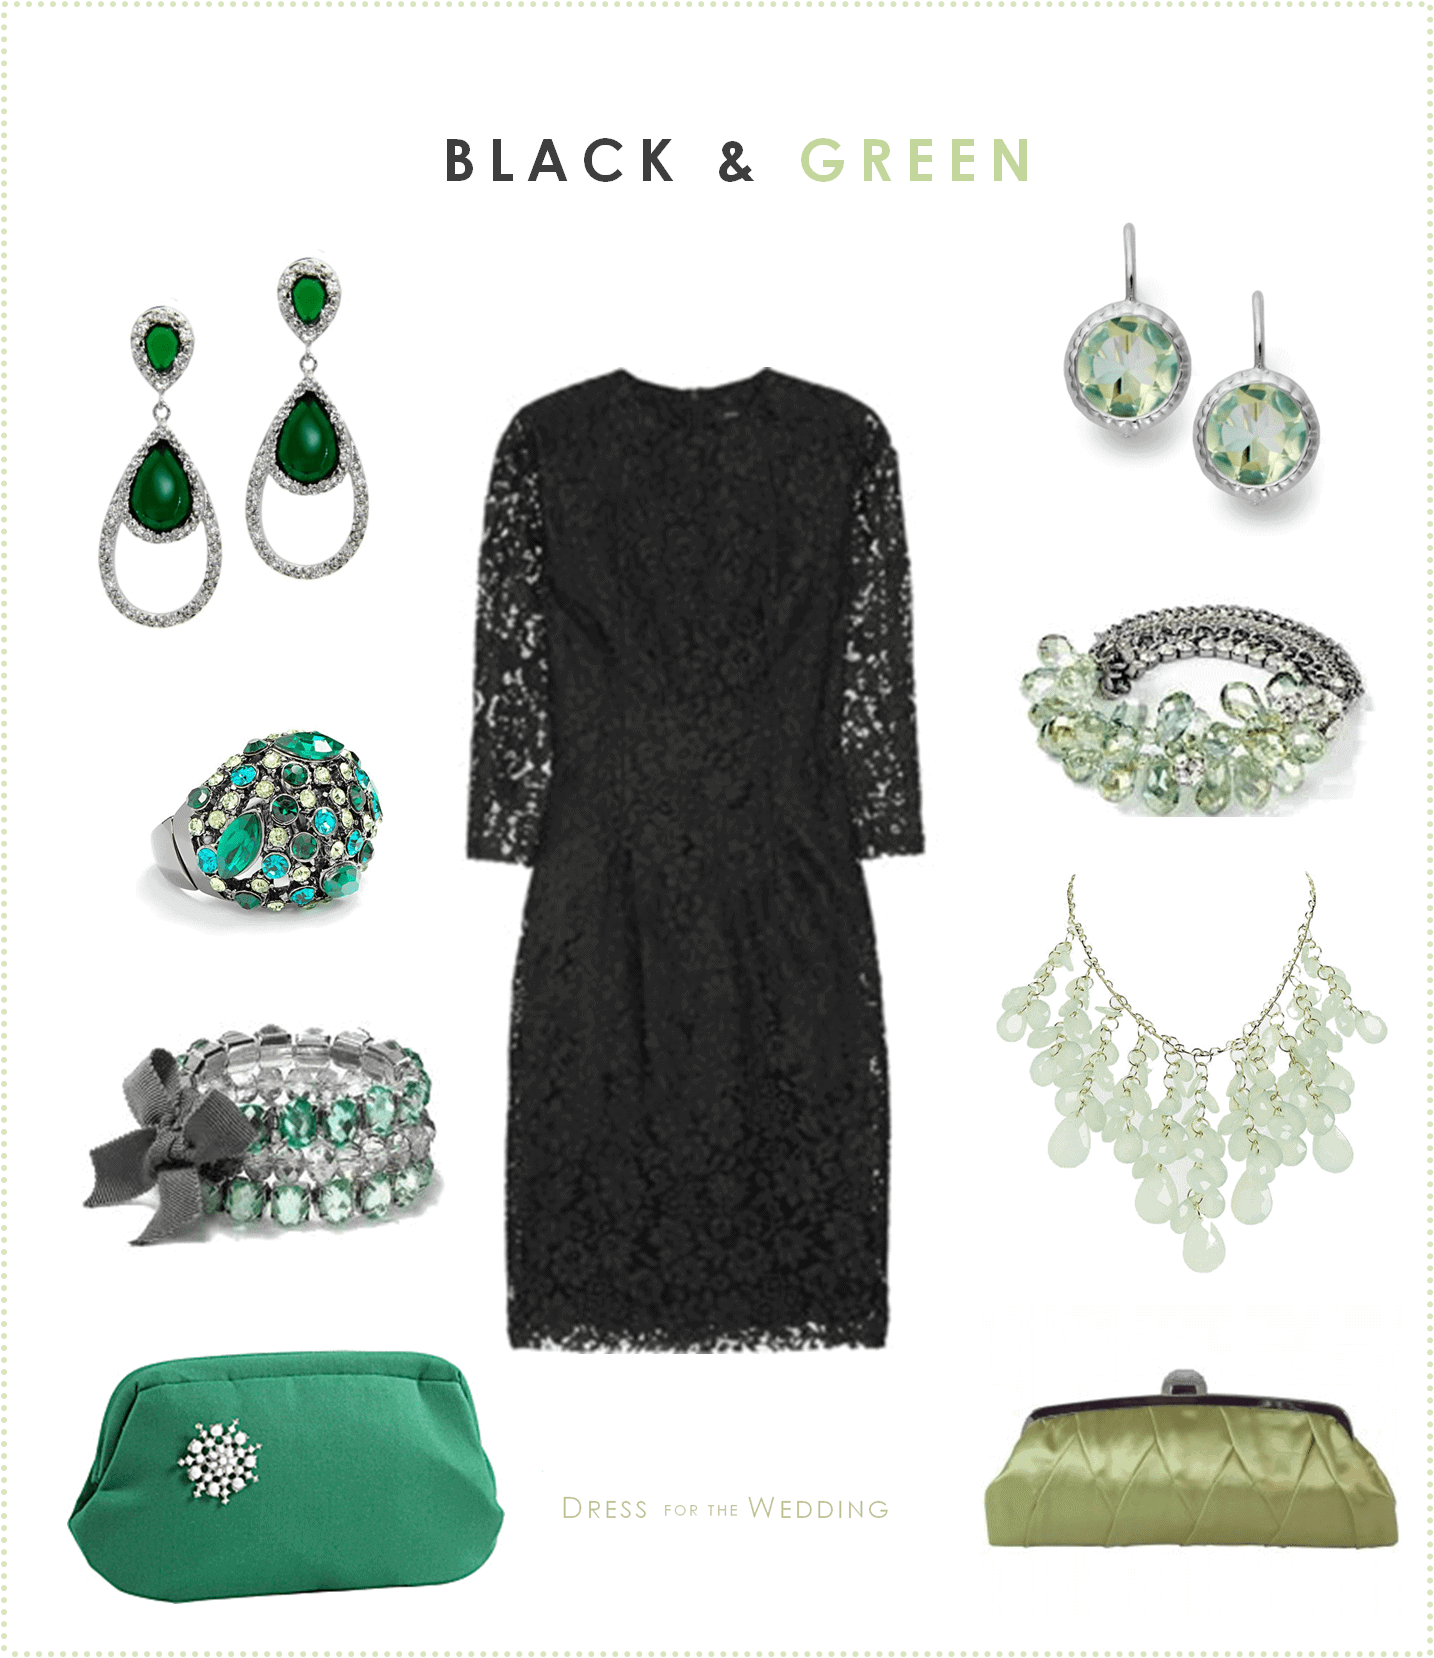 Black lace dress with green accessories for Jewelry accessories for black dress